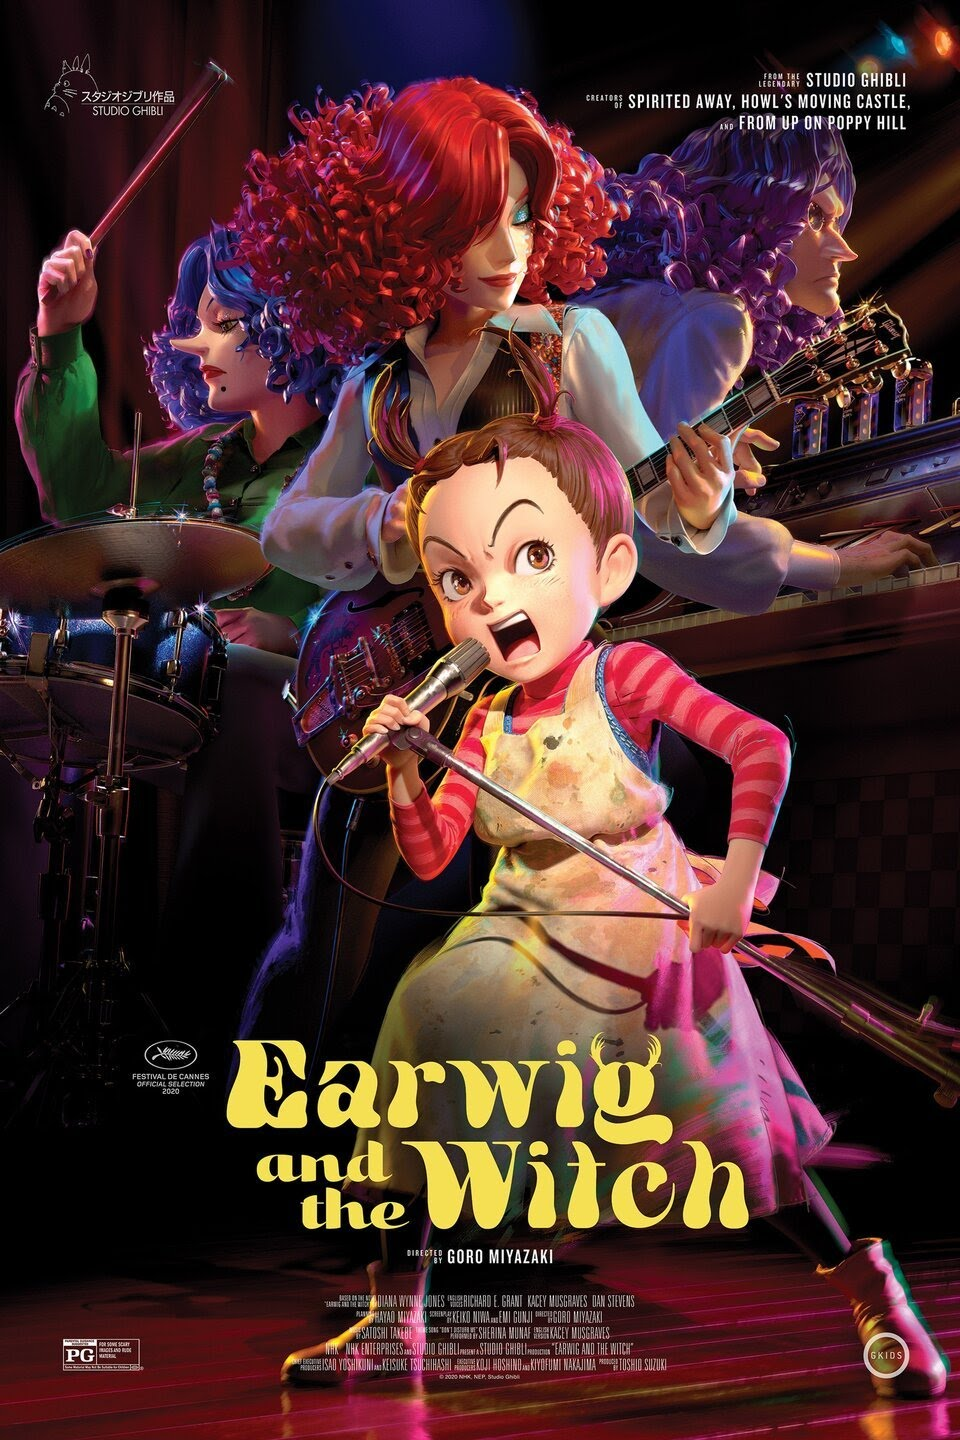 Poster for Earwig and The Witch